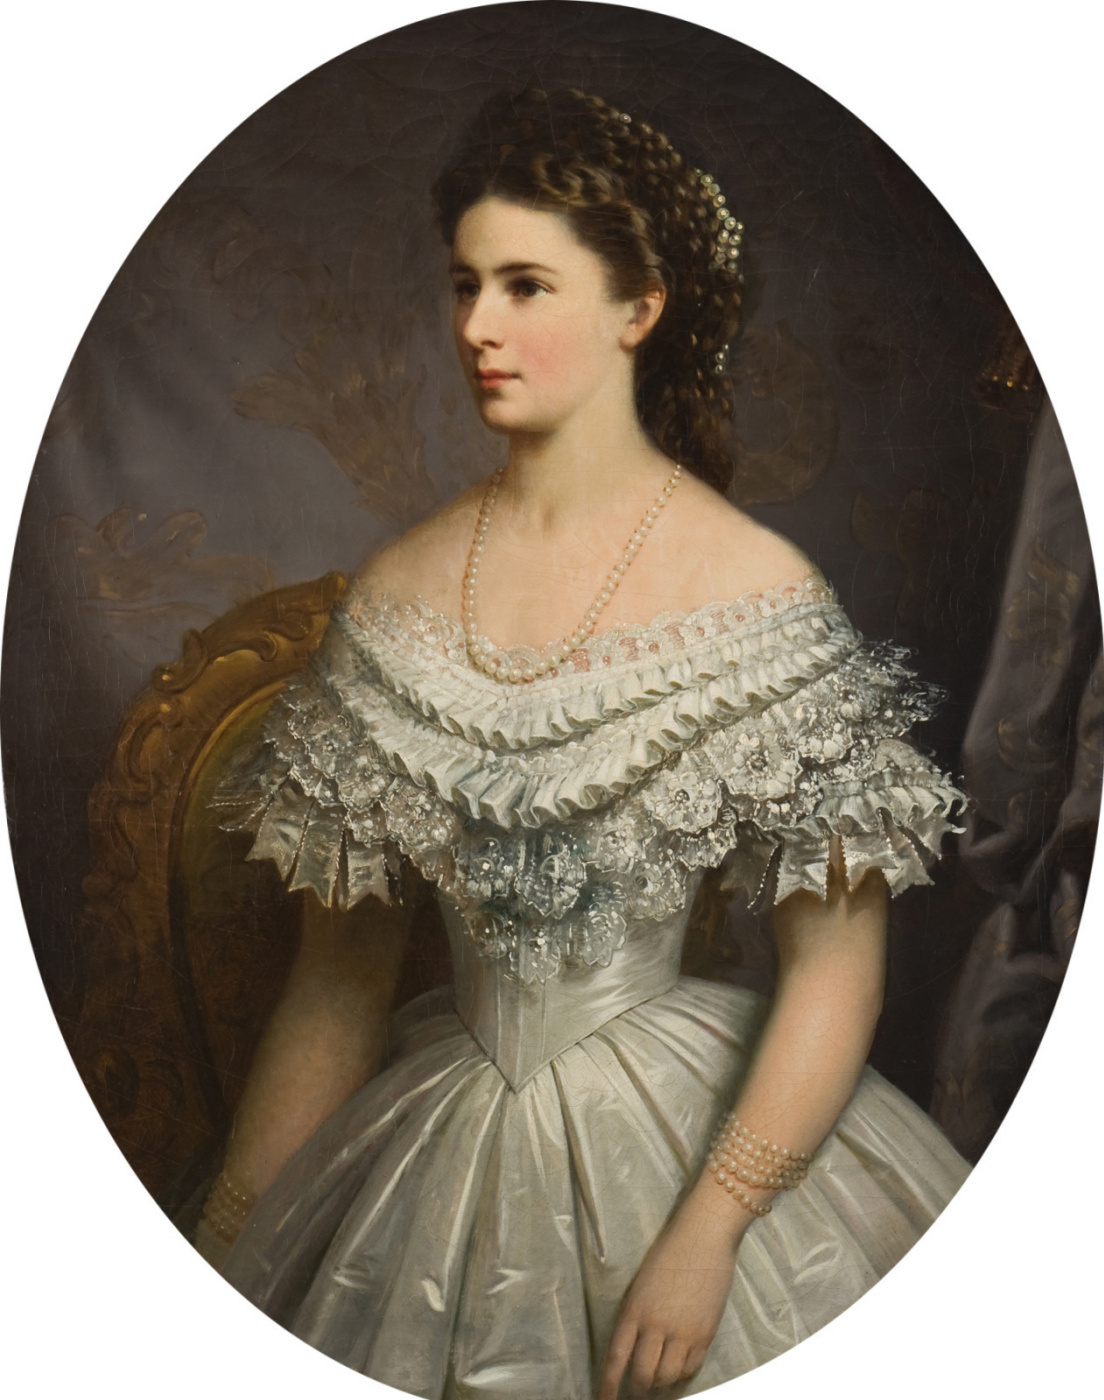 Unknown artist. Elizabeth of Bavaria in a pearl necklace